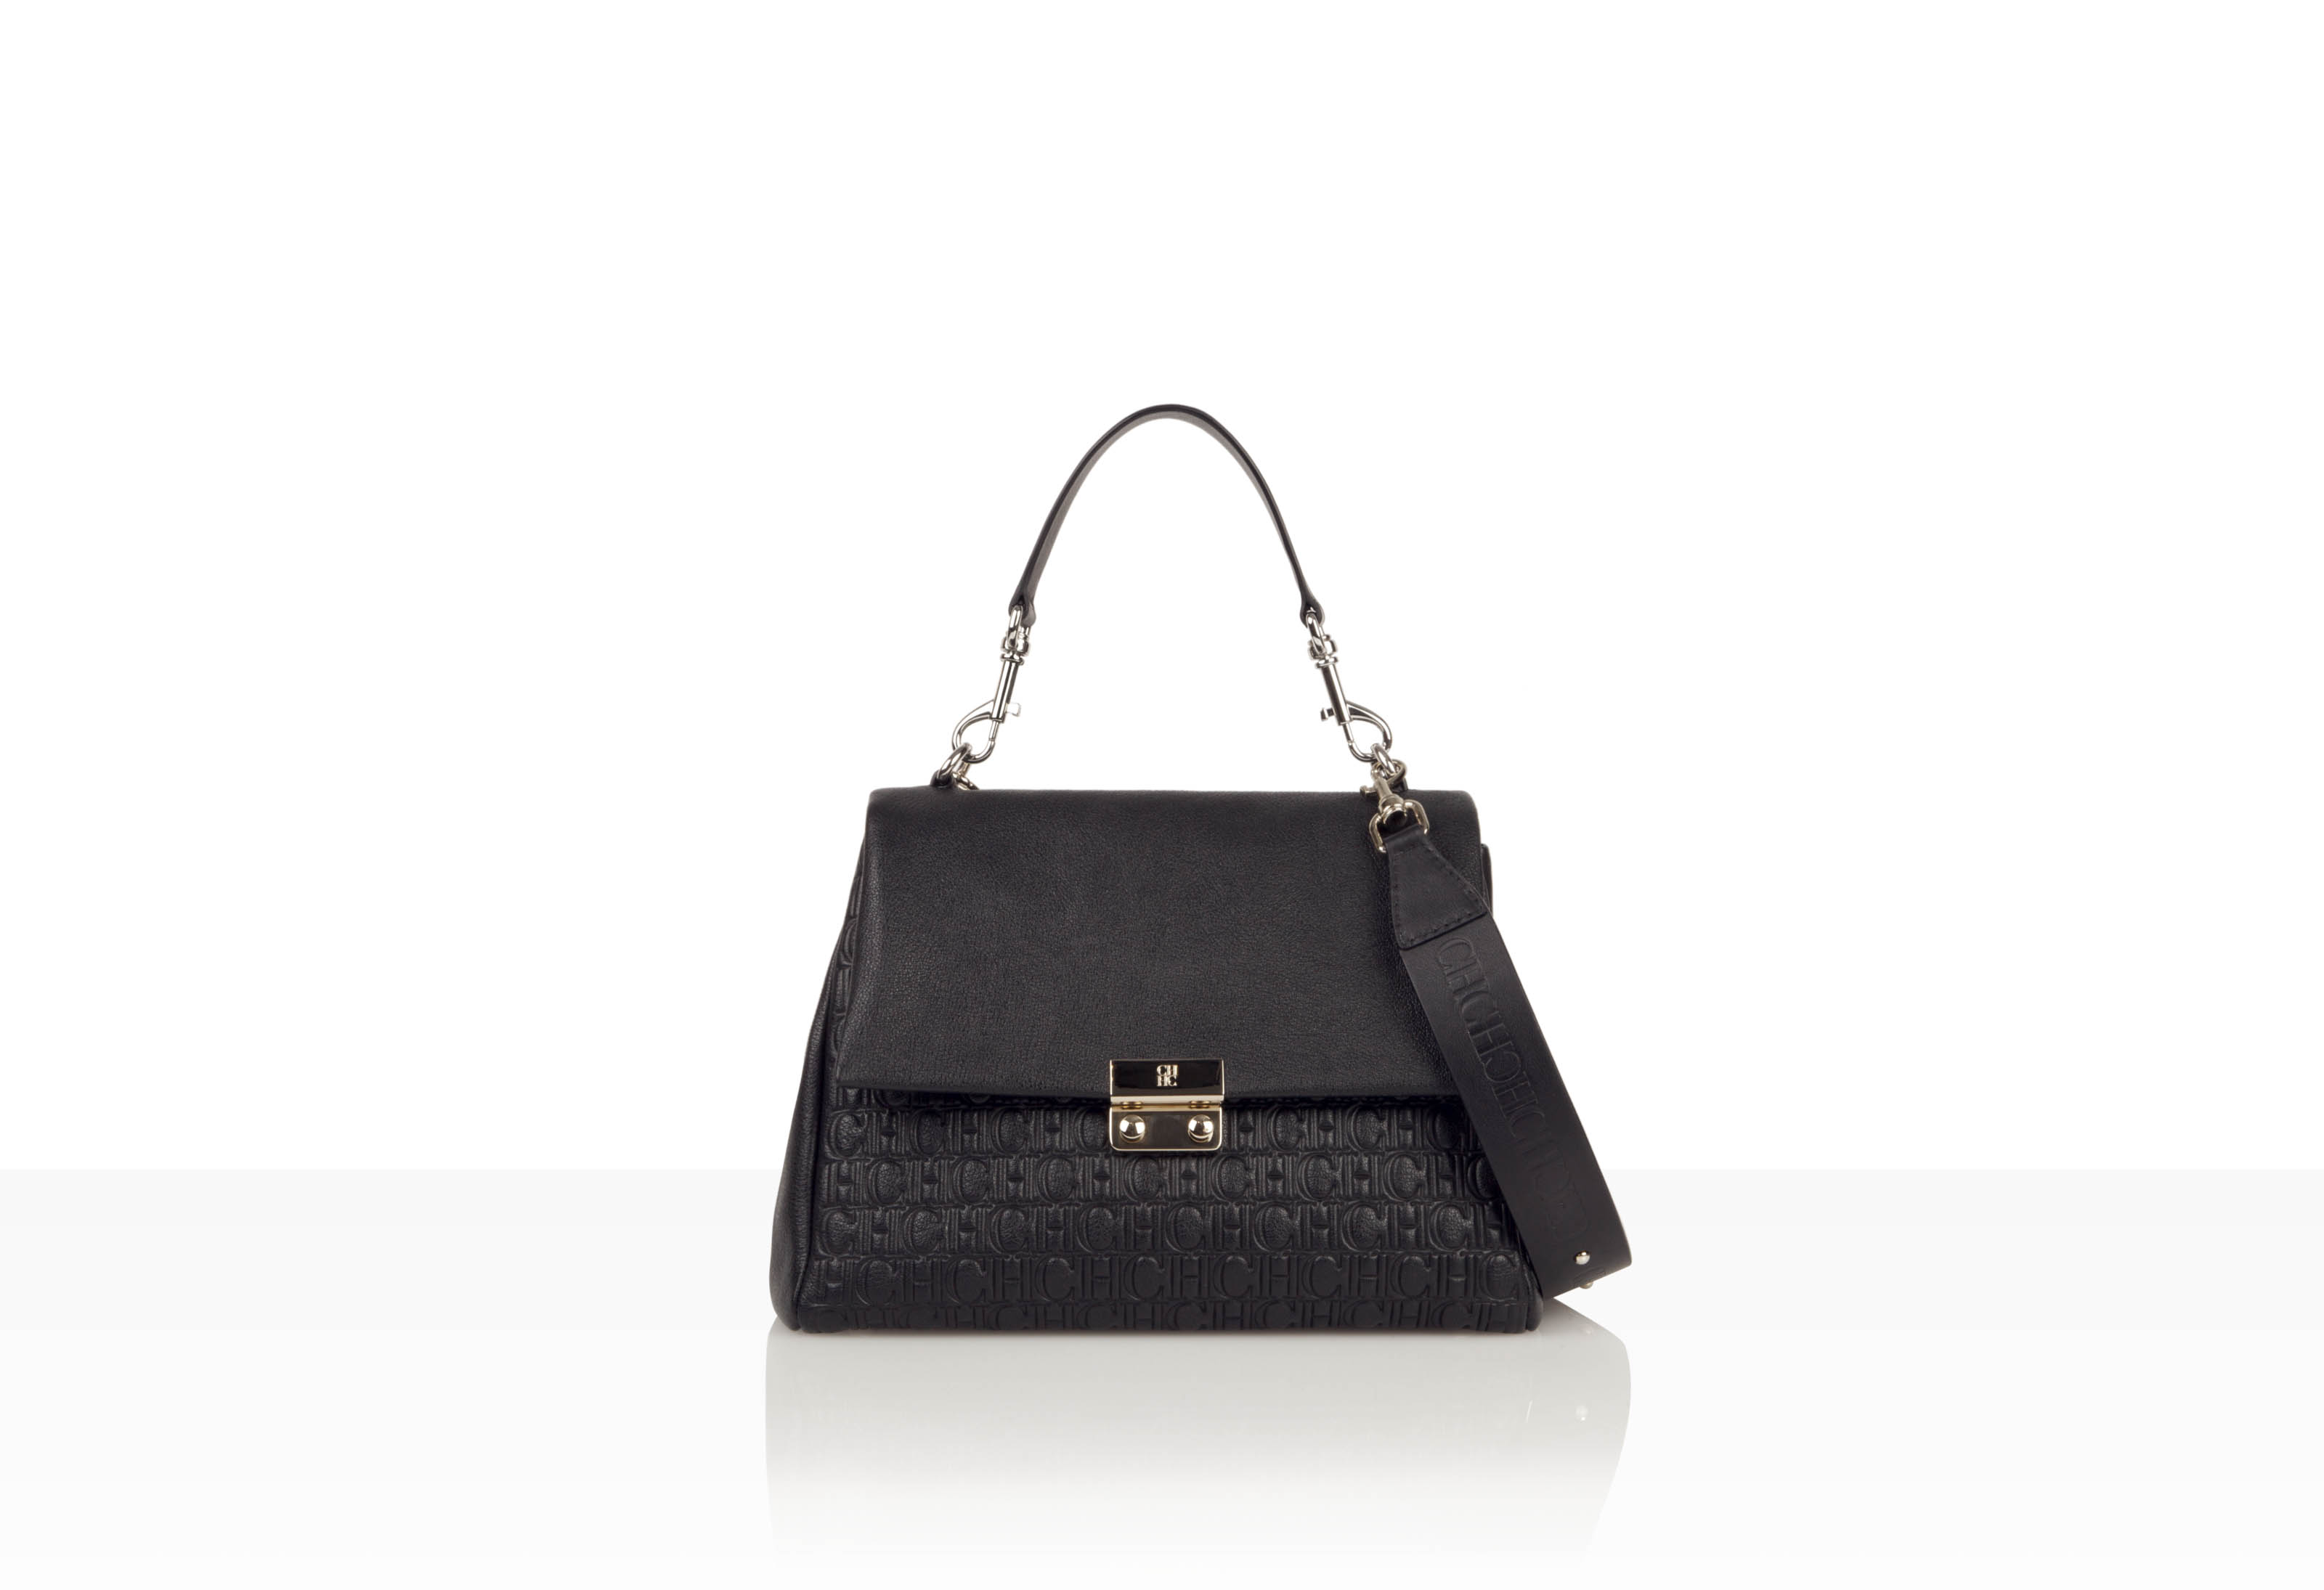 Ch Carolina Herrera Baret Bag